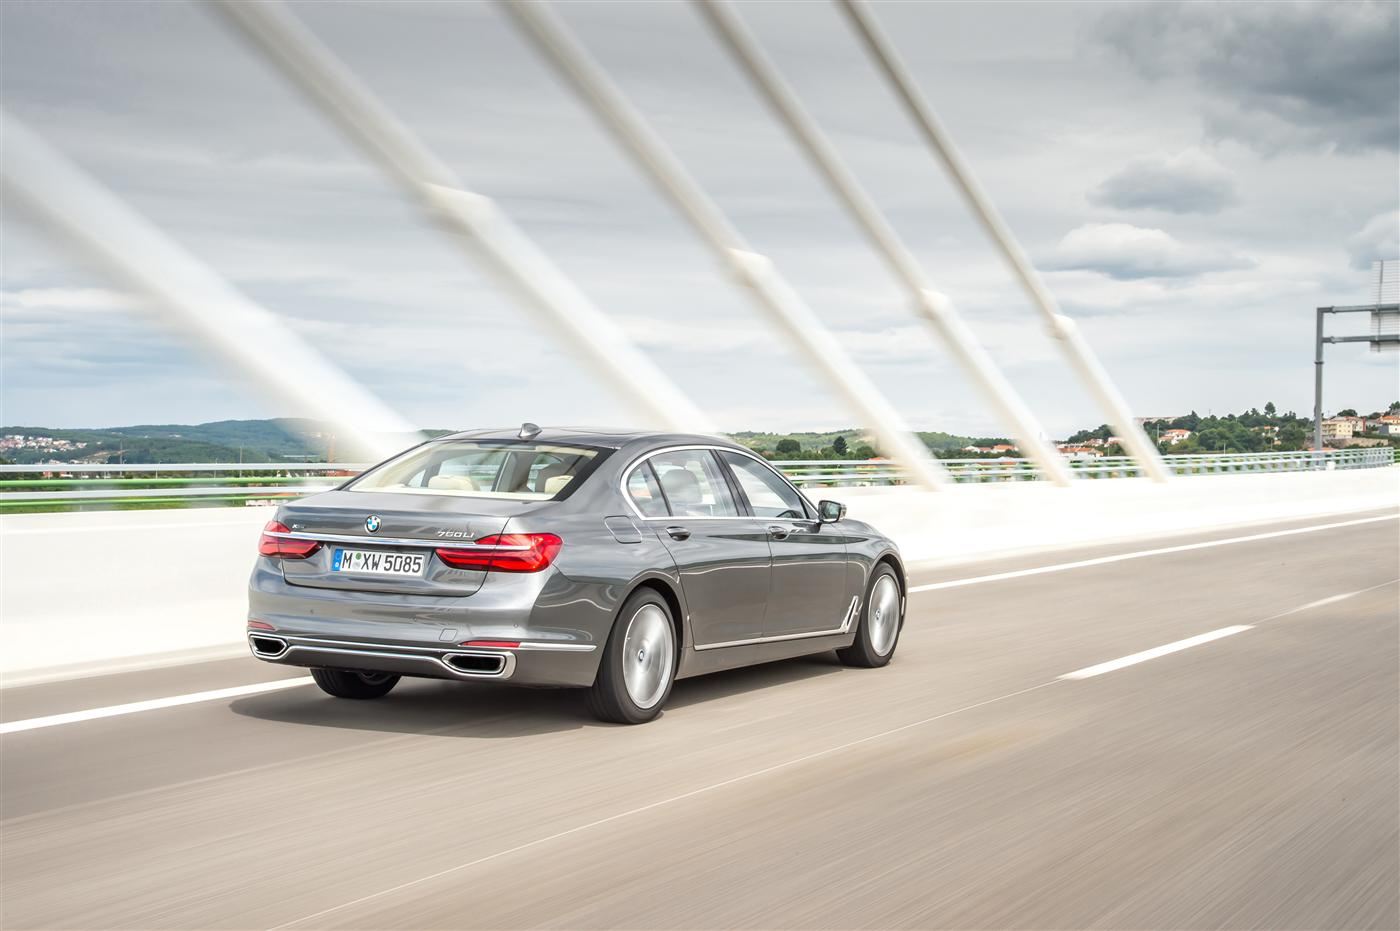 Introducing The 2016 BMW 7 Series 2